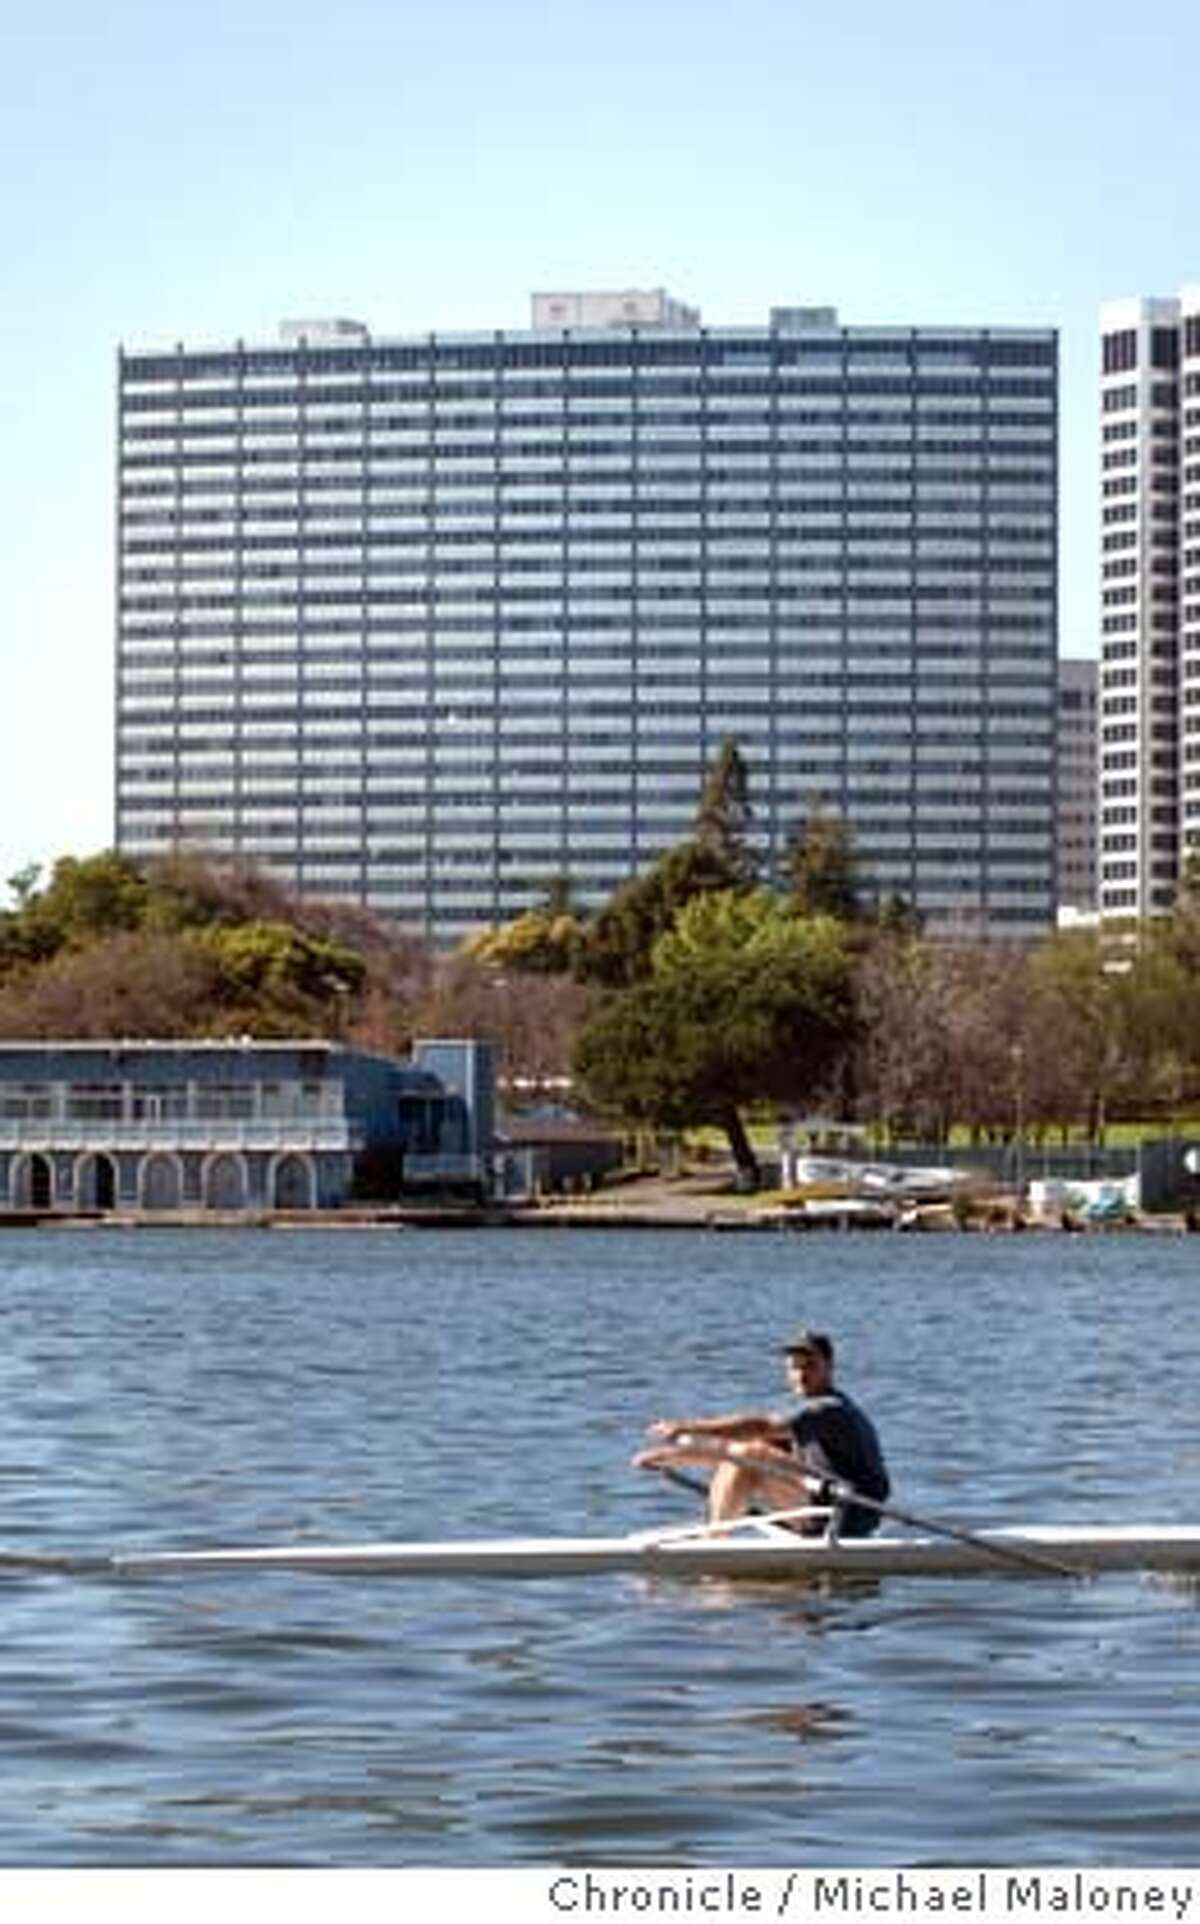 Summit Commercial has bought Oakland's Kaiser Center, one of the biggest office buildings in Oakland, once the premier skyscraper when it opened in 1960. The building is near the shores of Lake Merritt at 300 Lakeside Drive. CHRONICLE PHOTO BY MICHAEL MALONEY